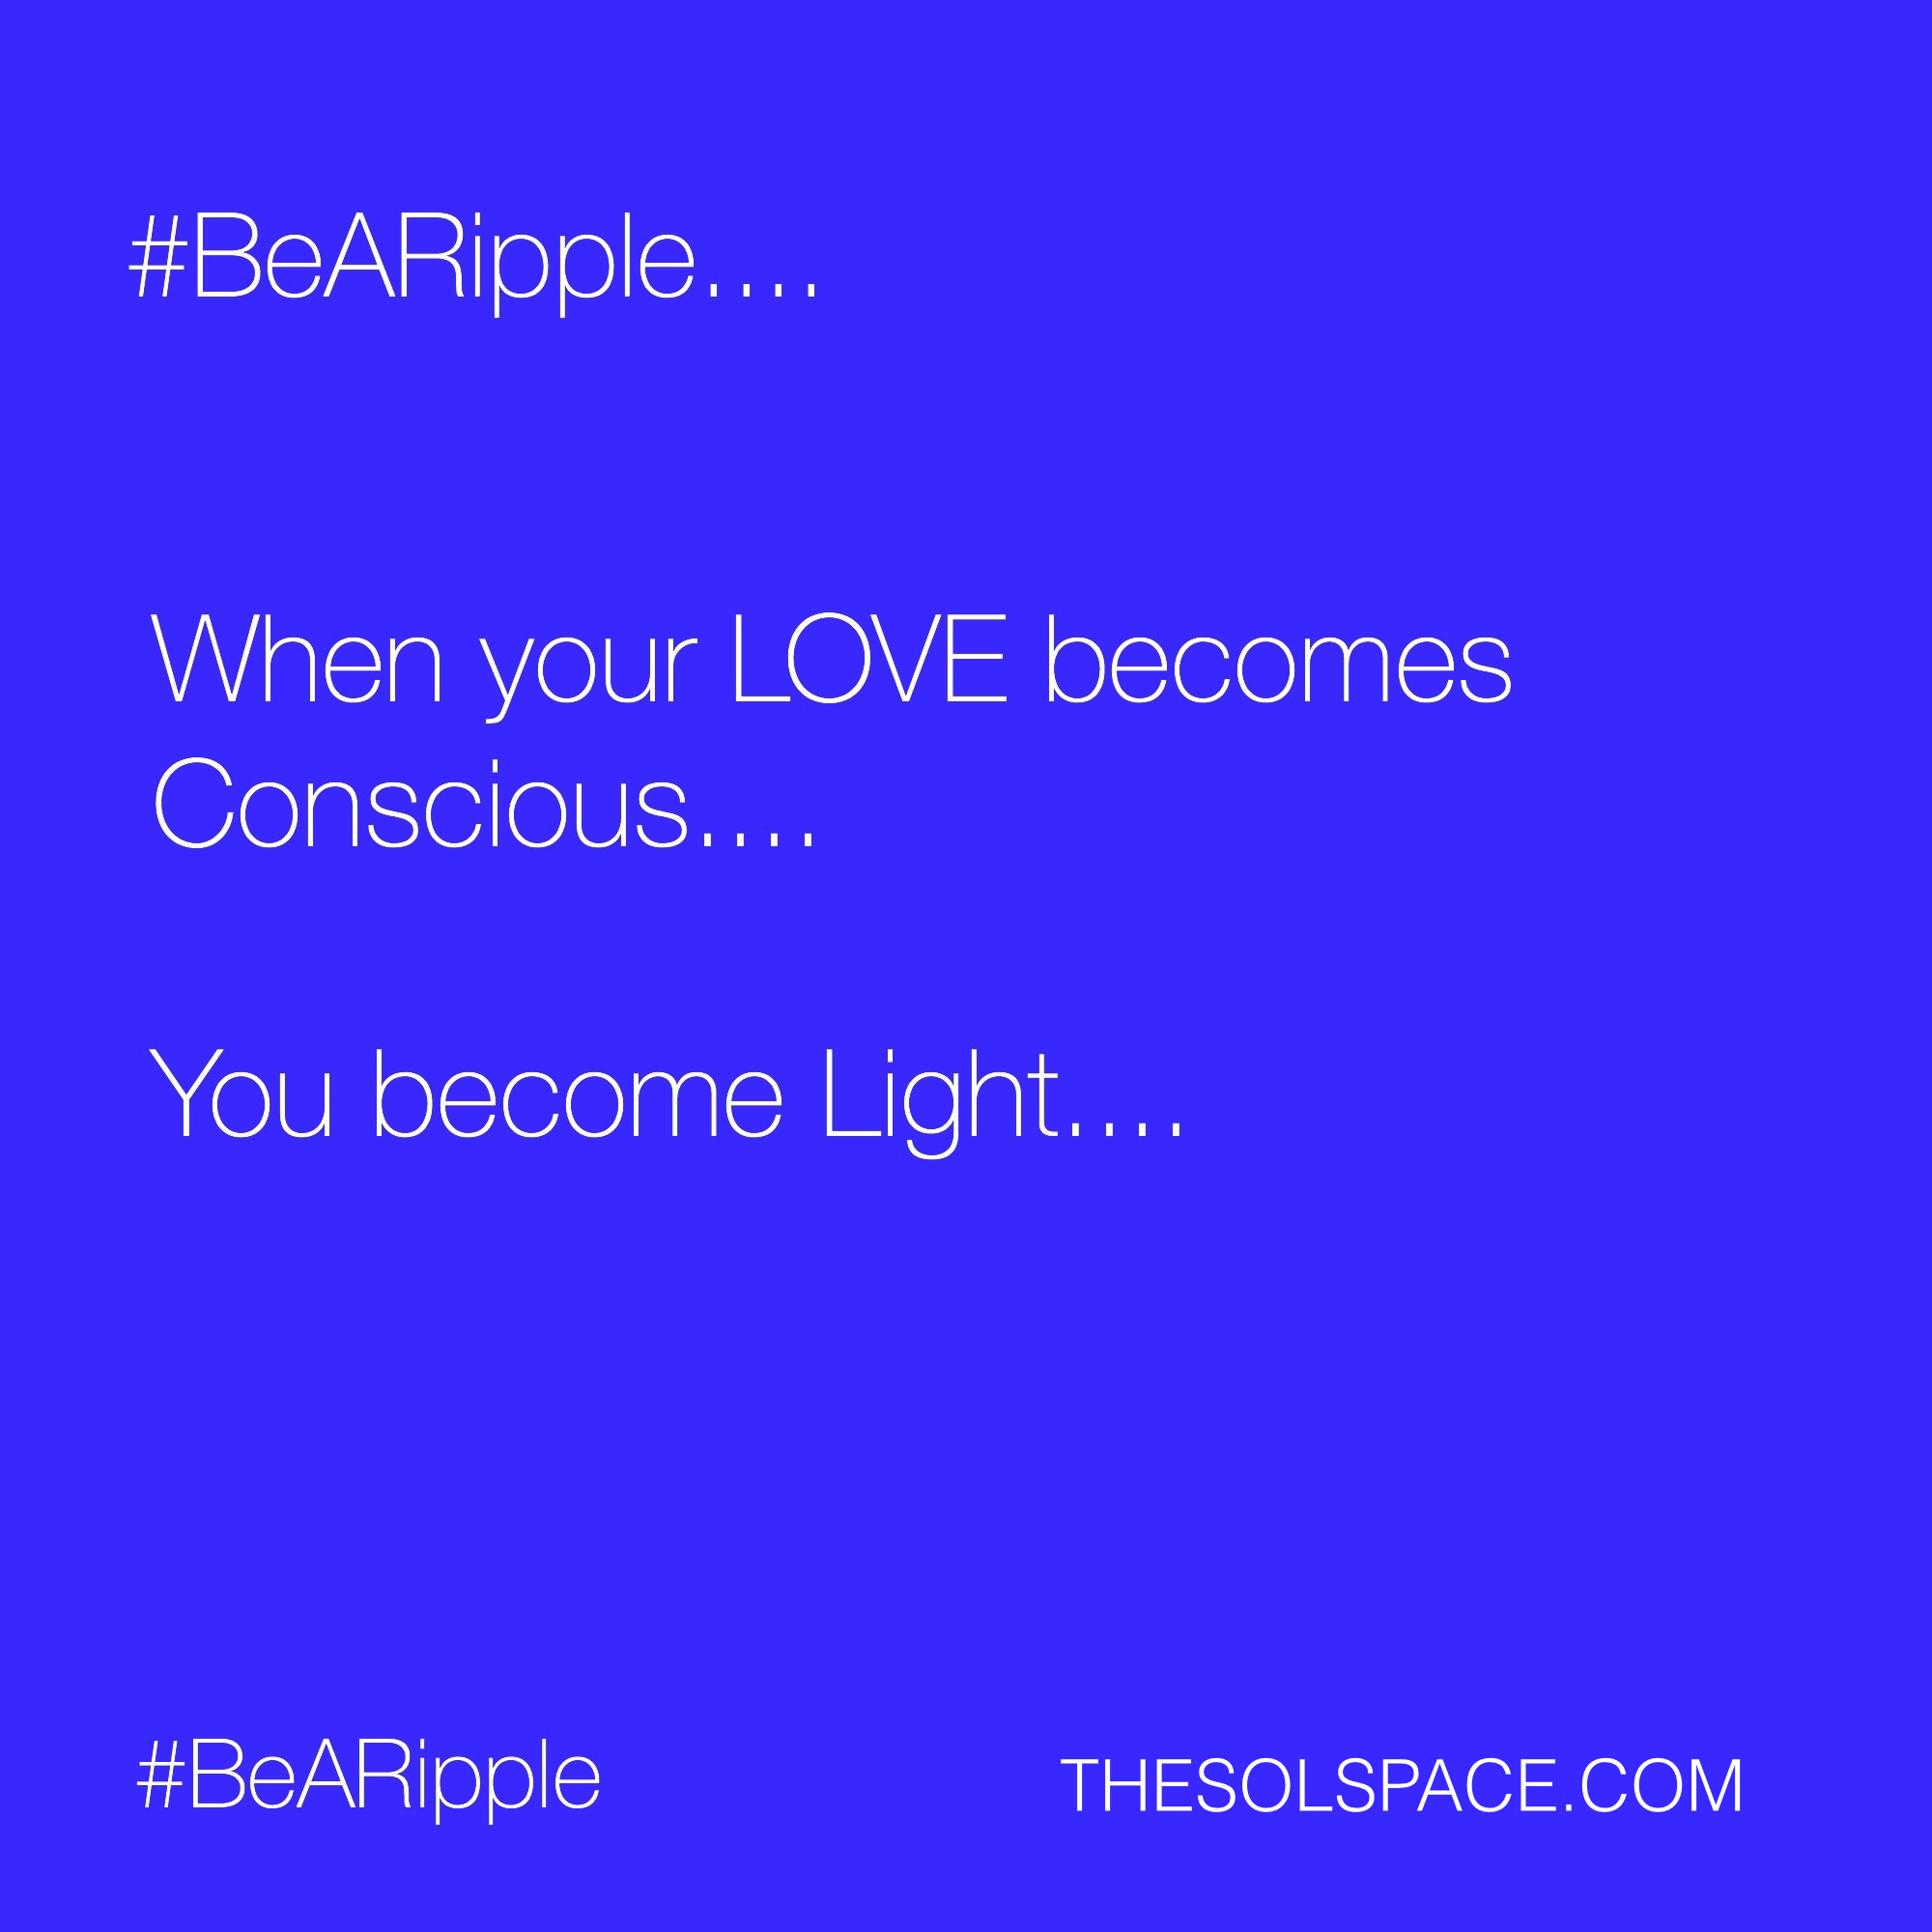 #BeARipple.. When your LOVE becomes conscious...you become LIGHT @theSOLspace